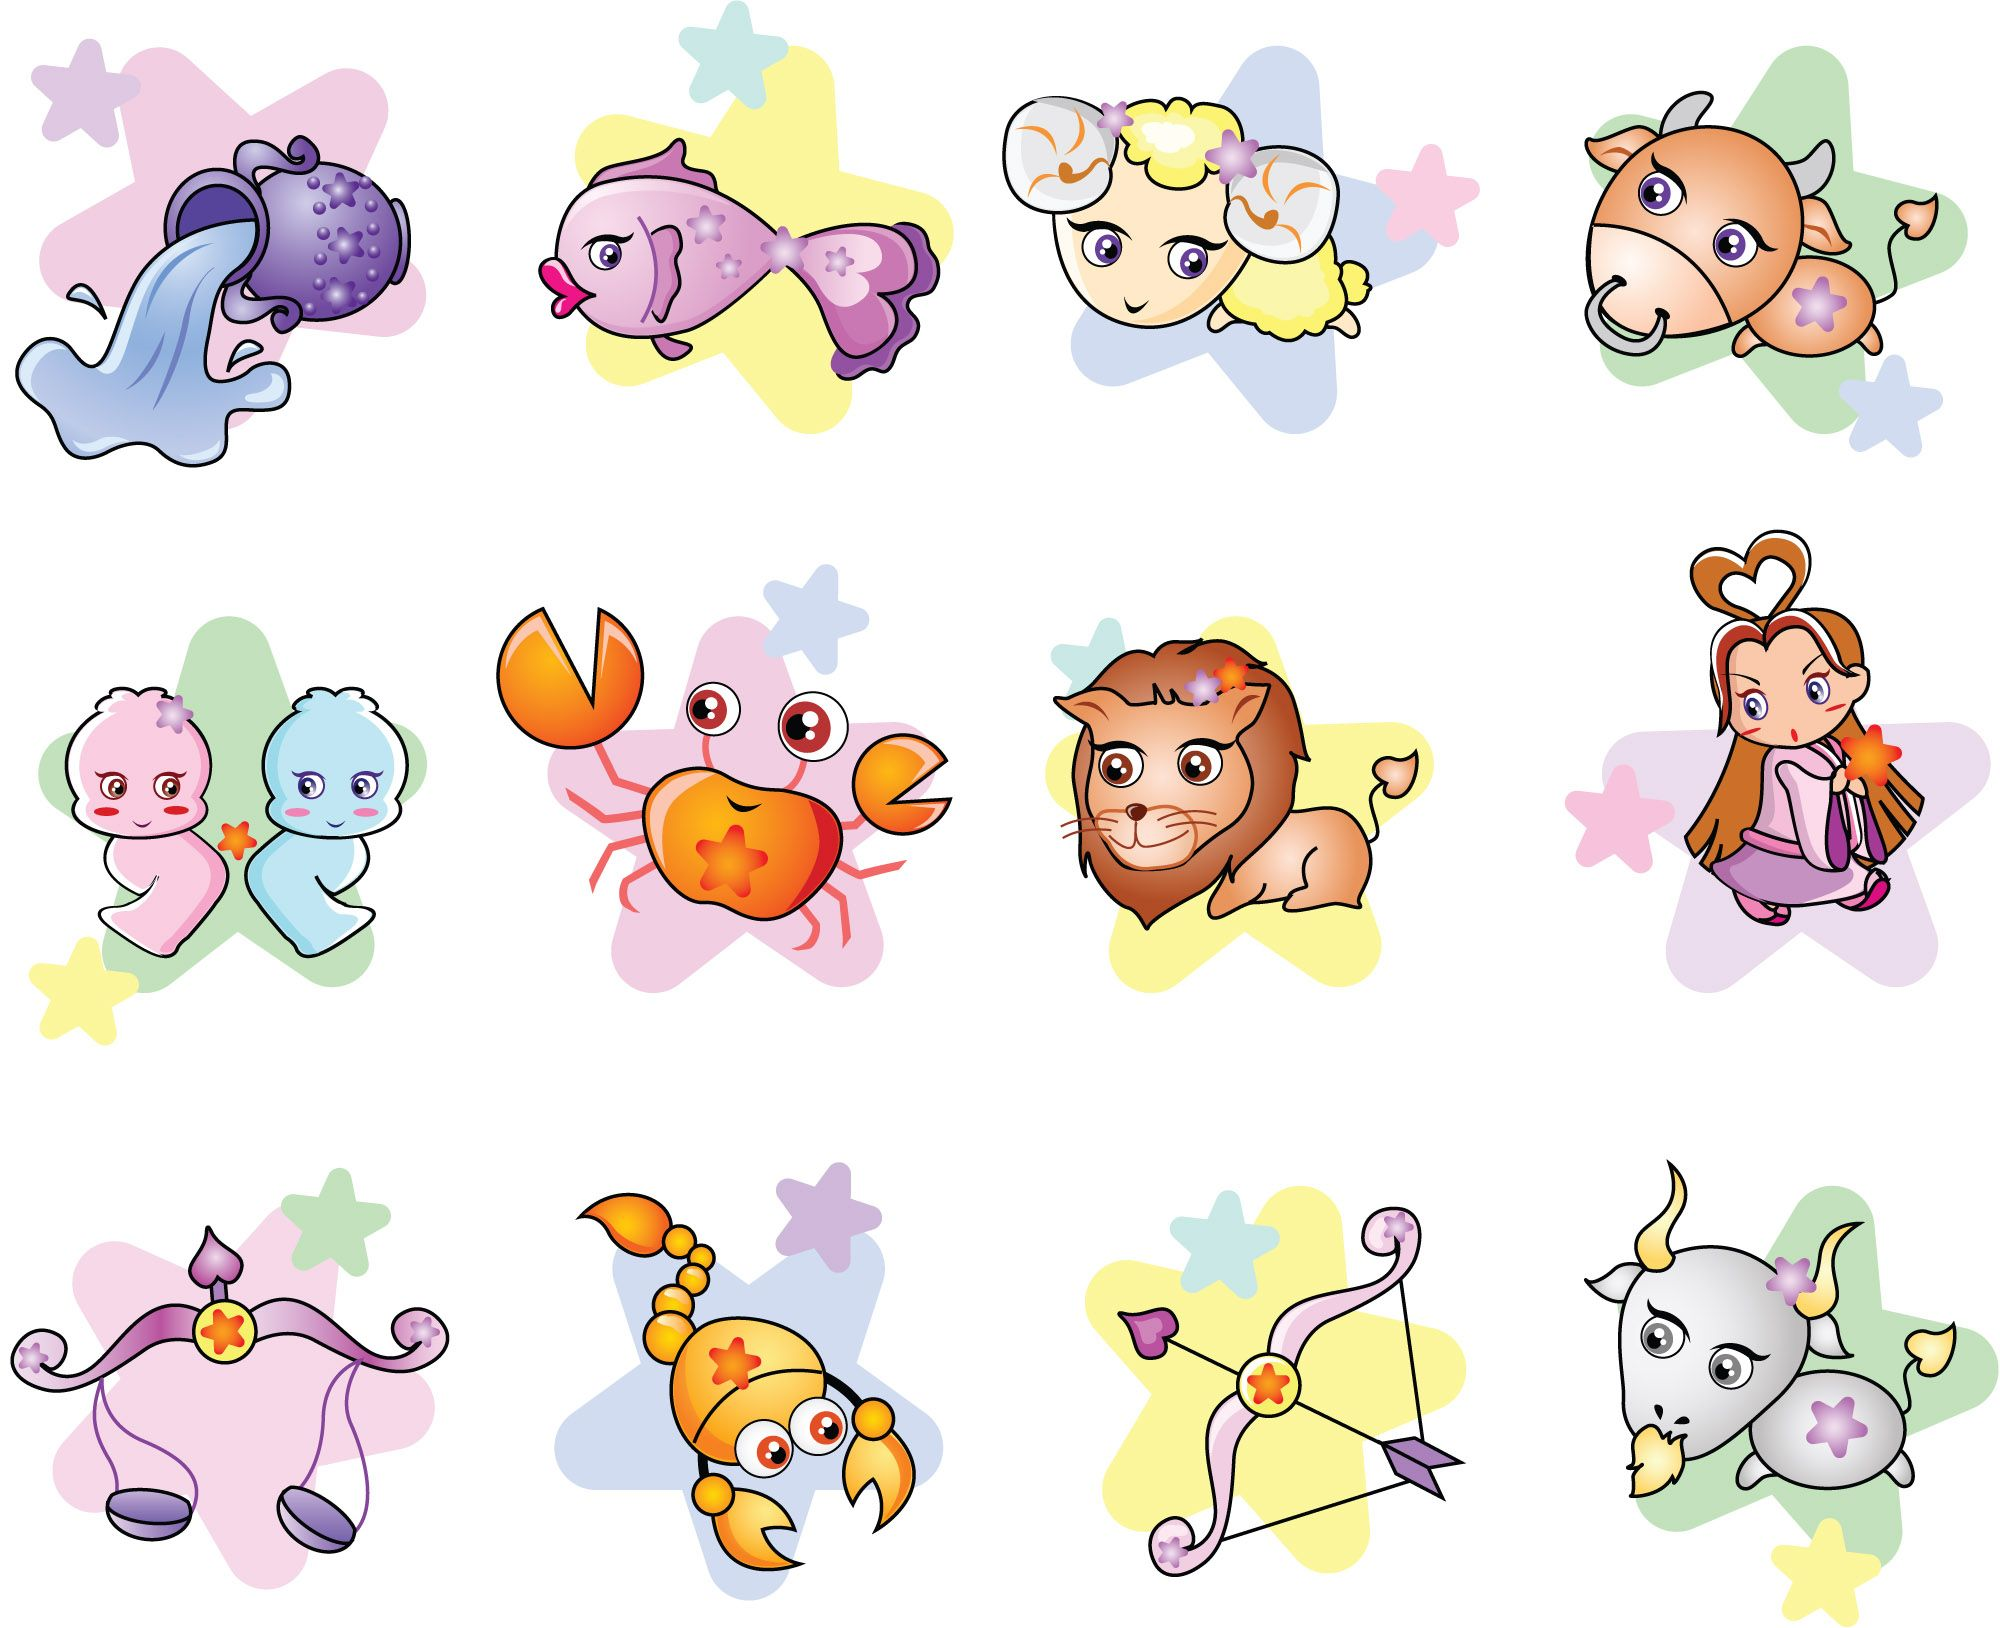 Cute Zodiac For Tattoos  Tattoos  Pinterest  Zodiac. Blotchy Signs. Hot Signs Of Stroke. Pulmonary Signs. Red Road Signs. Dog Bite Signs. Awal Signs. Characteristics Signs Of Stroke. Domestic Violence Awareness Signs